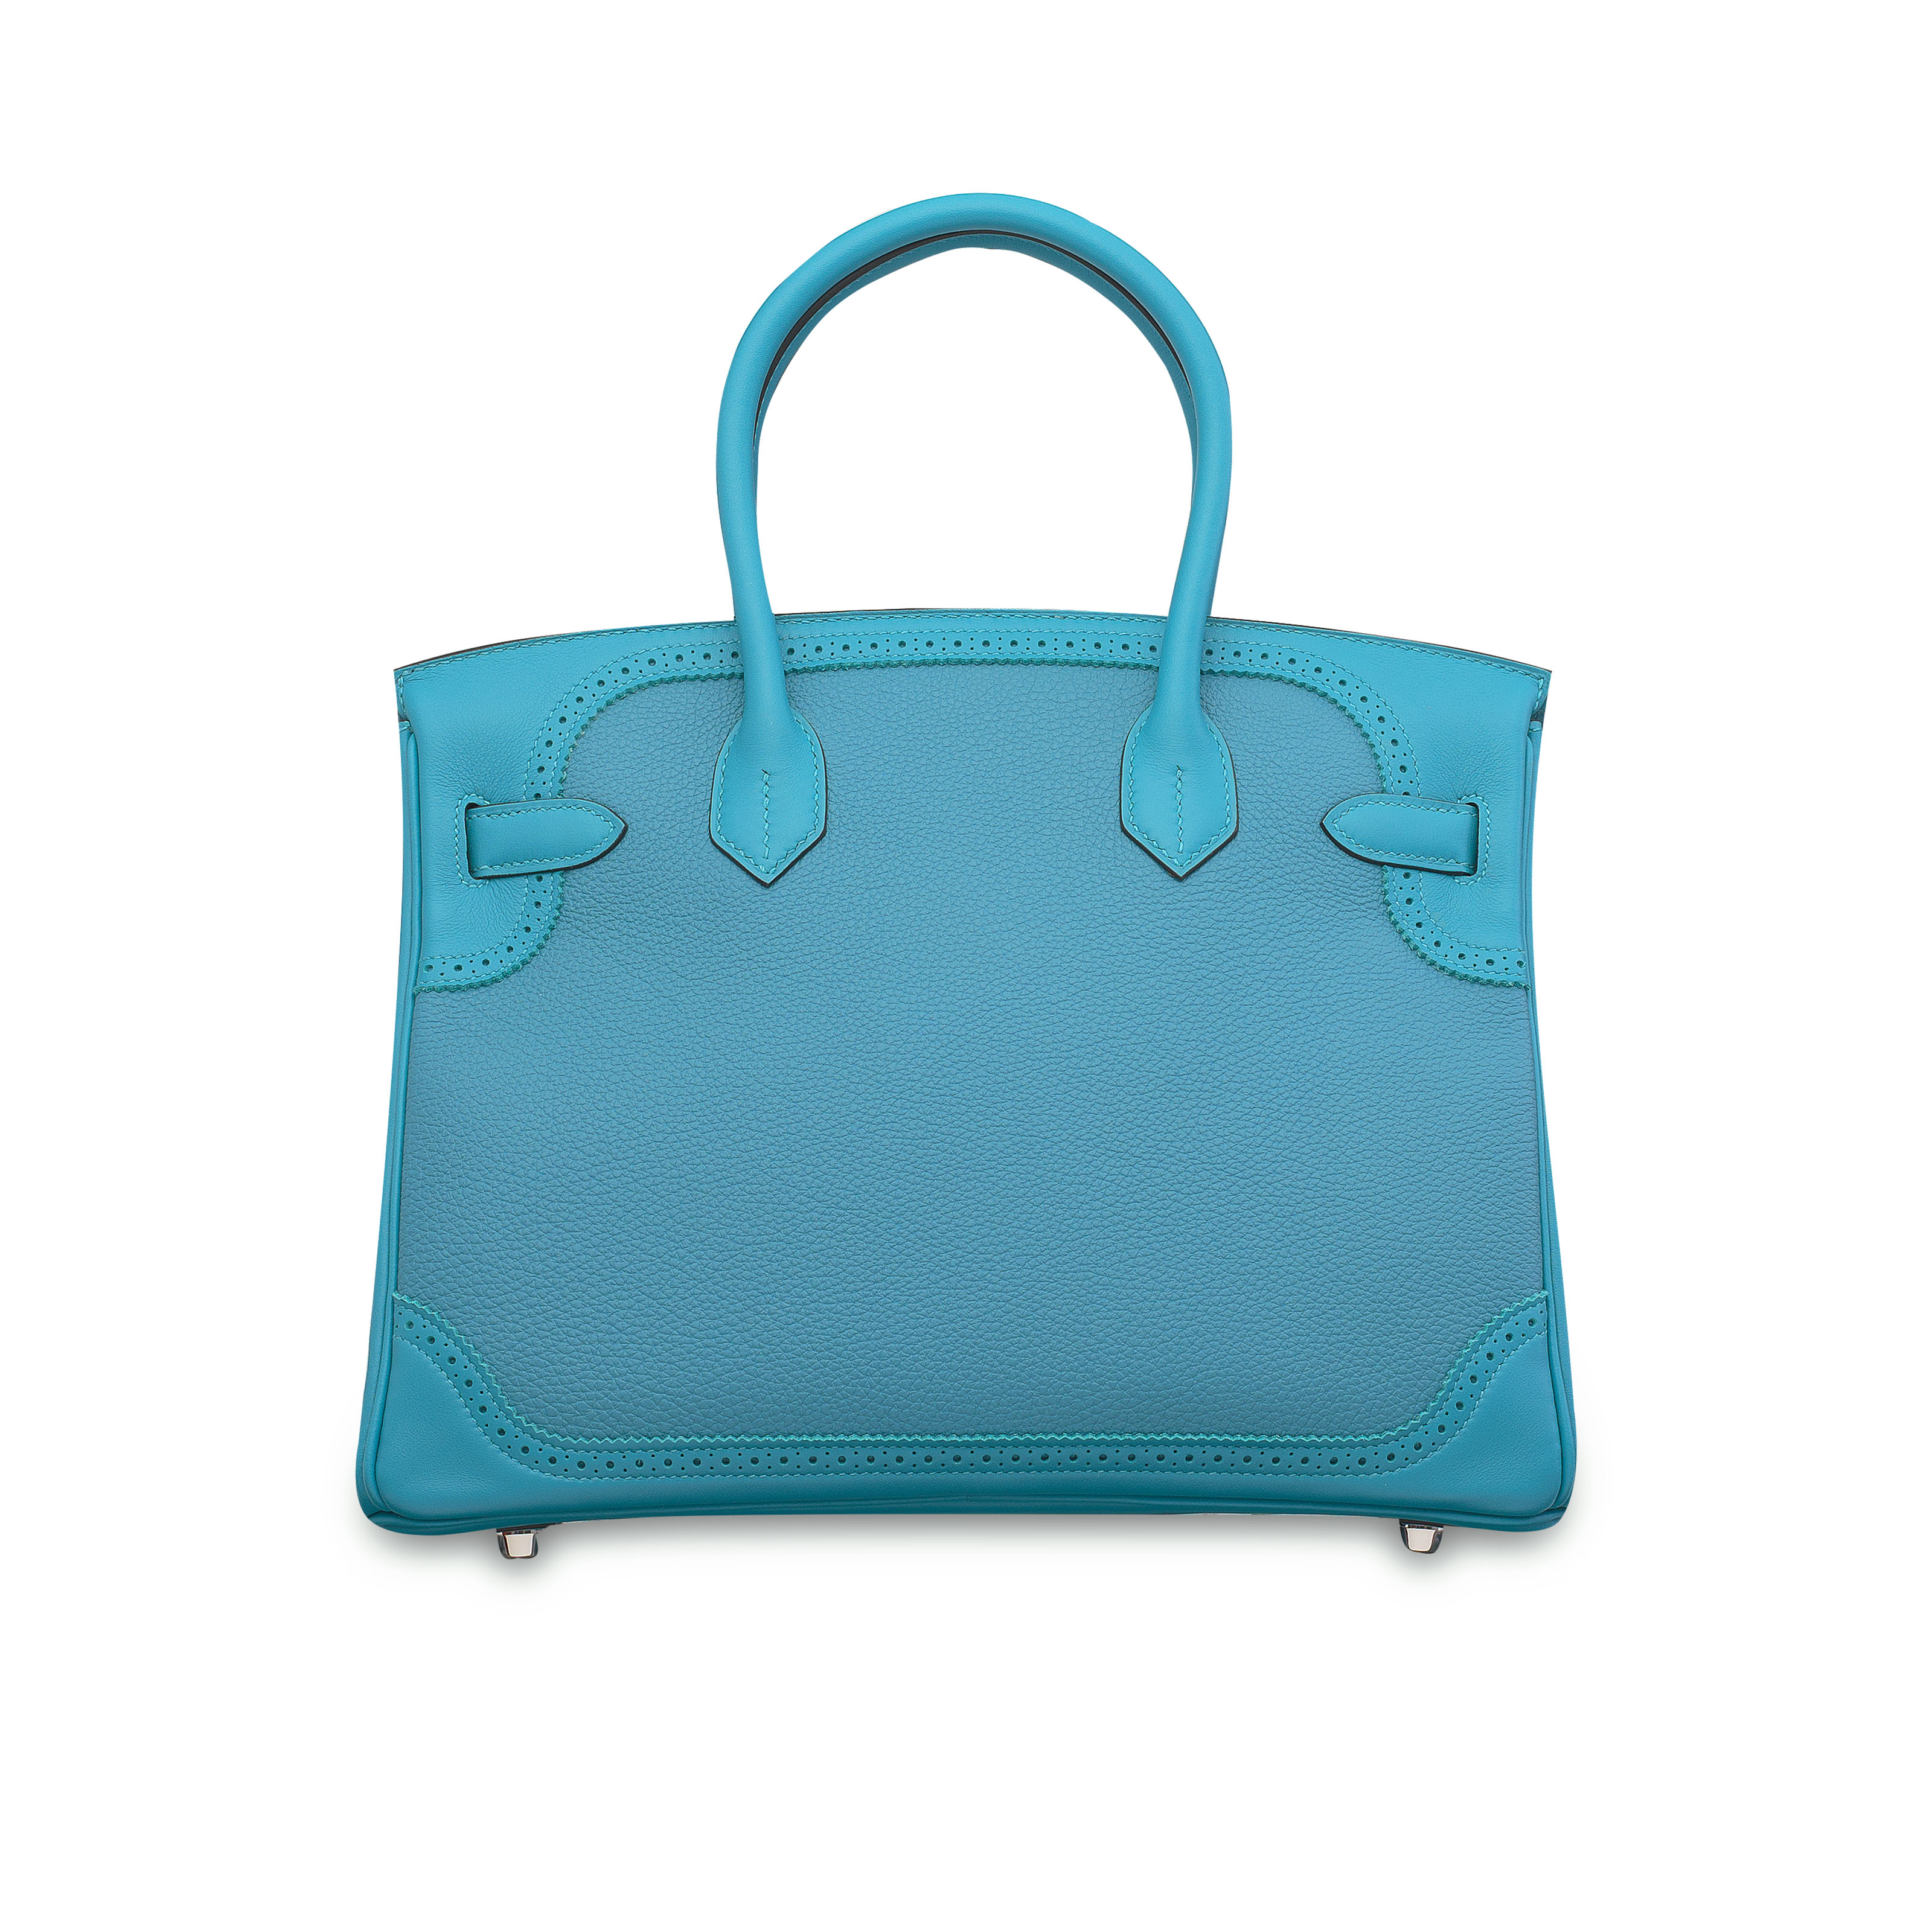 A LIMITED EDITION TURQUOISE SW